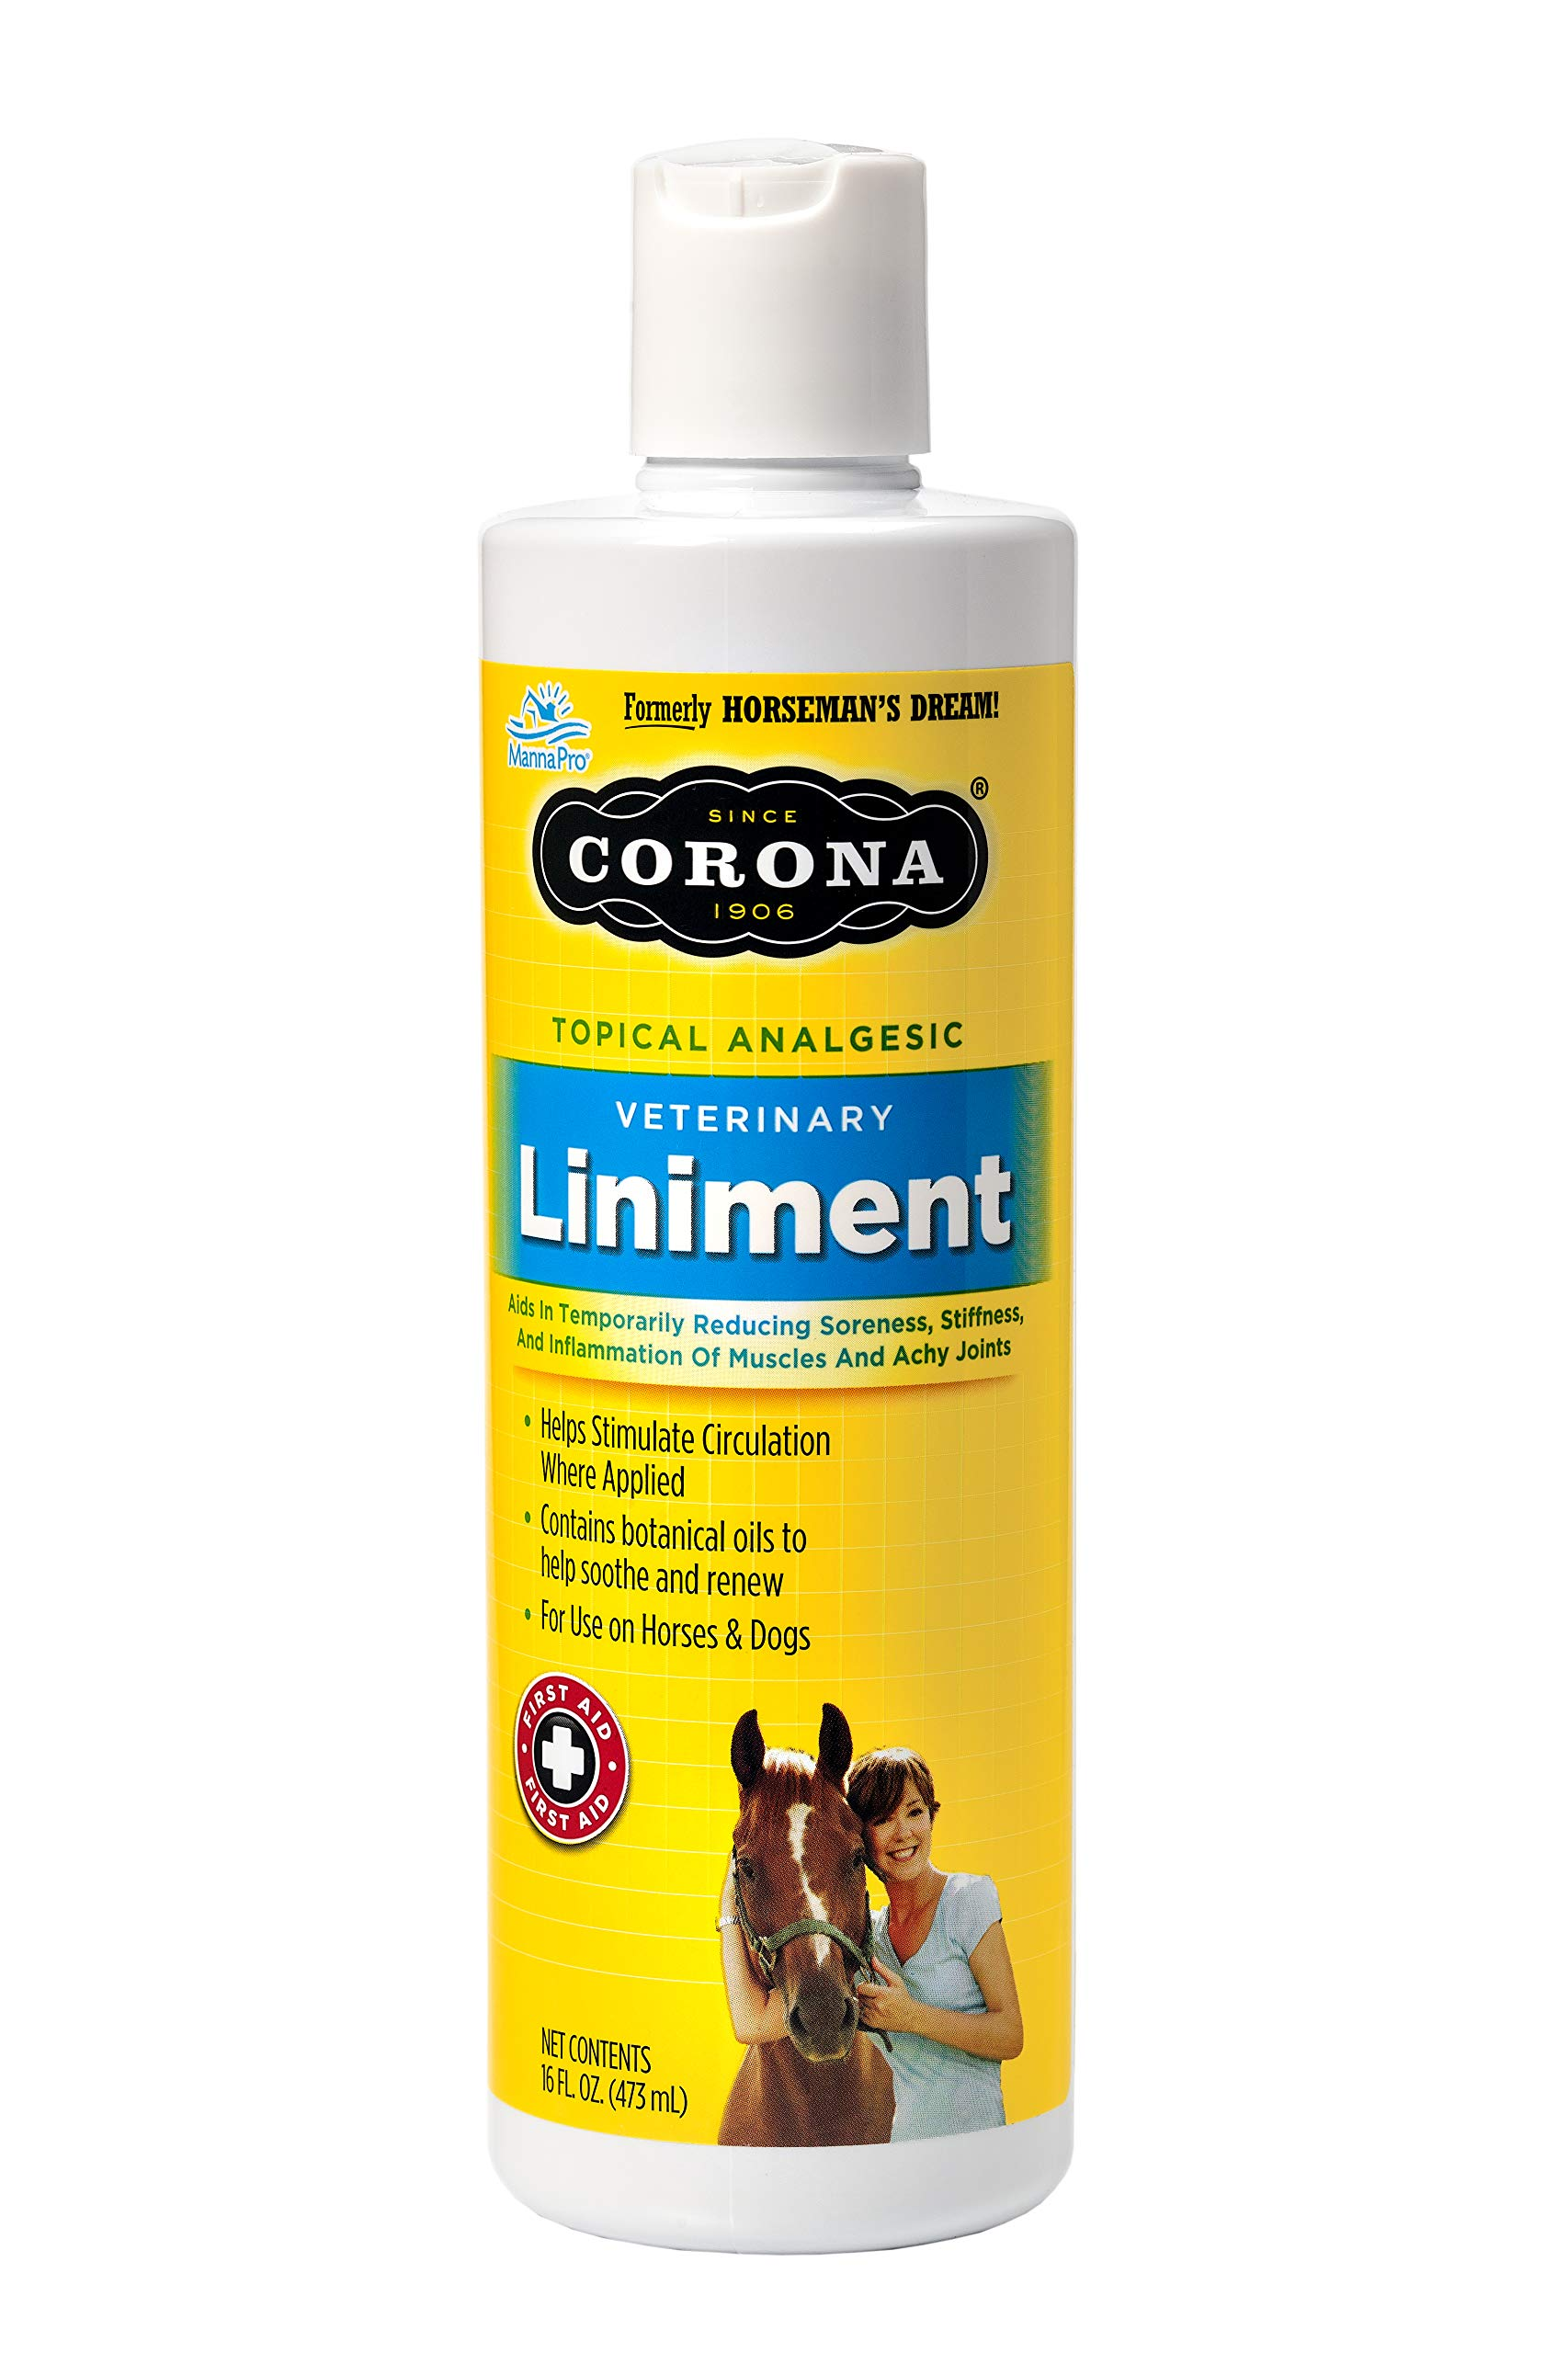 Manna Pro 1000193 62620 Corona Topical Analgesic Veterinary Liniment, 16 Ounces by Manna Pro